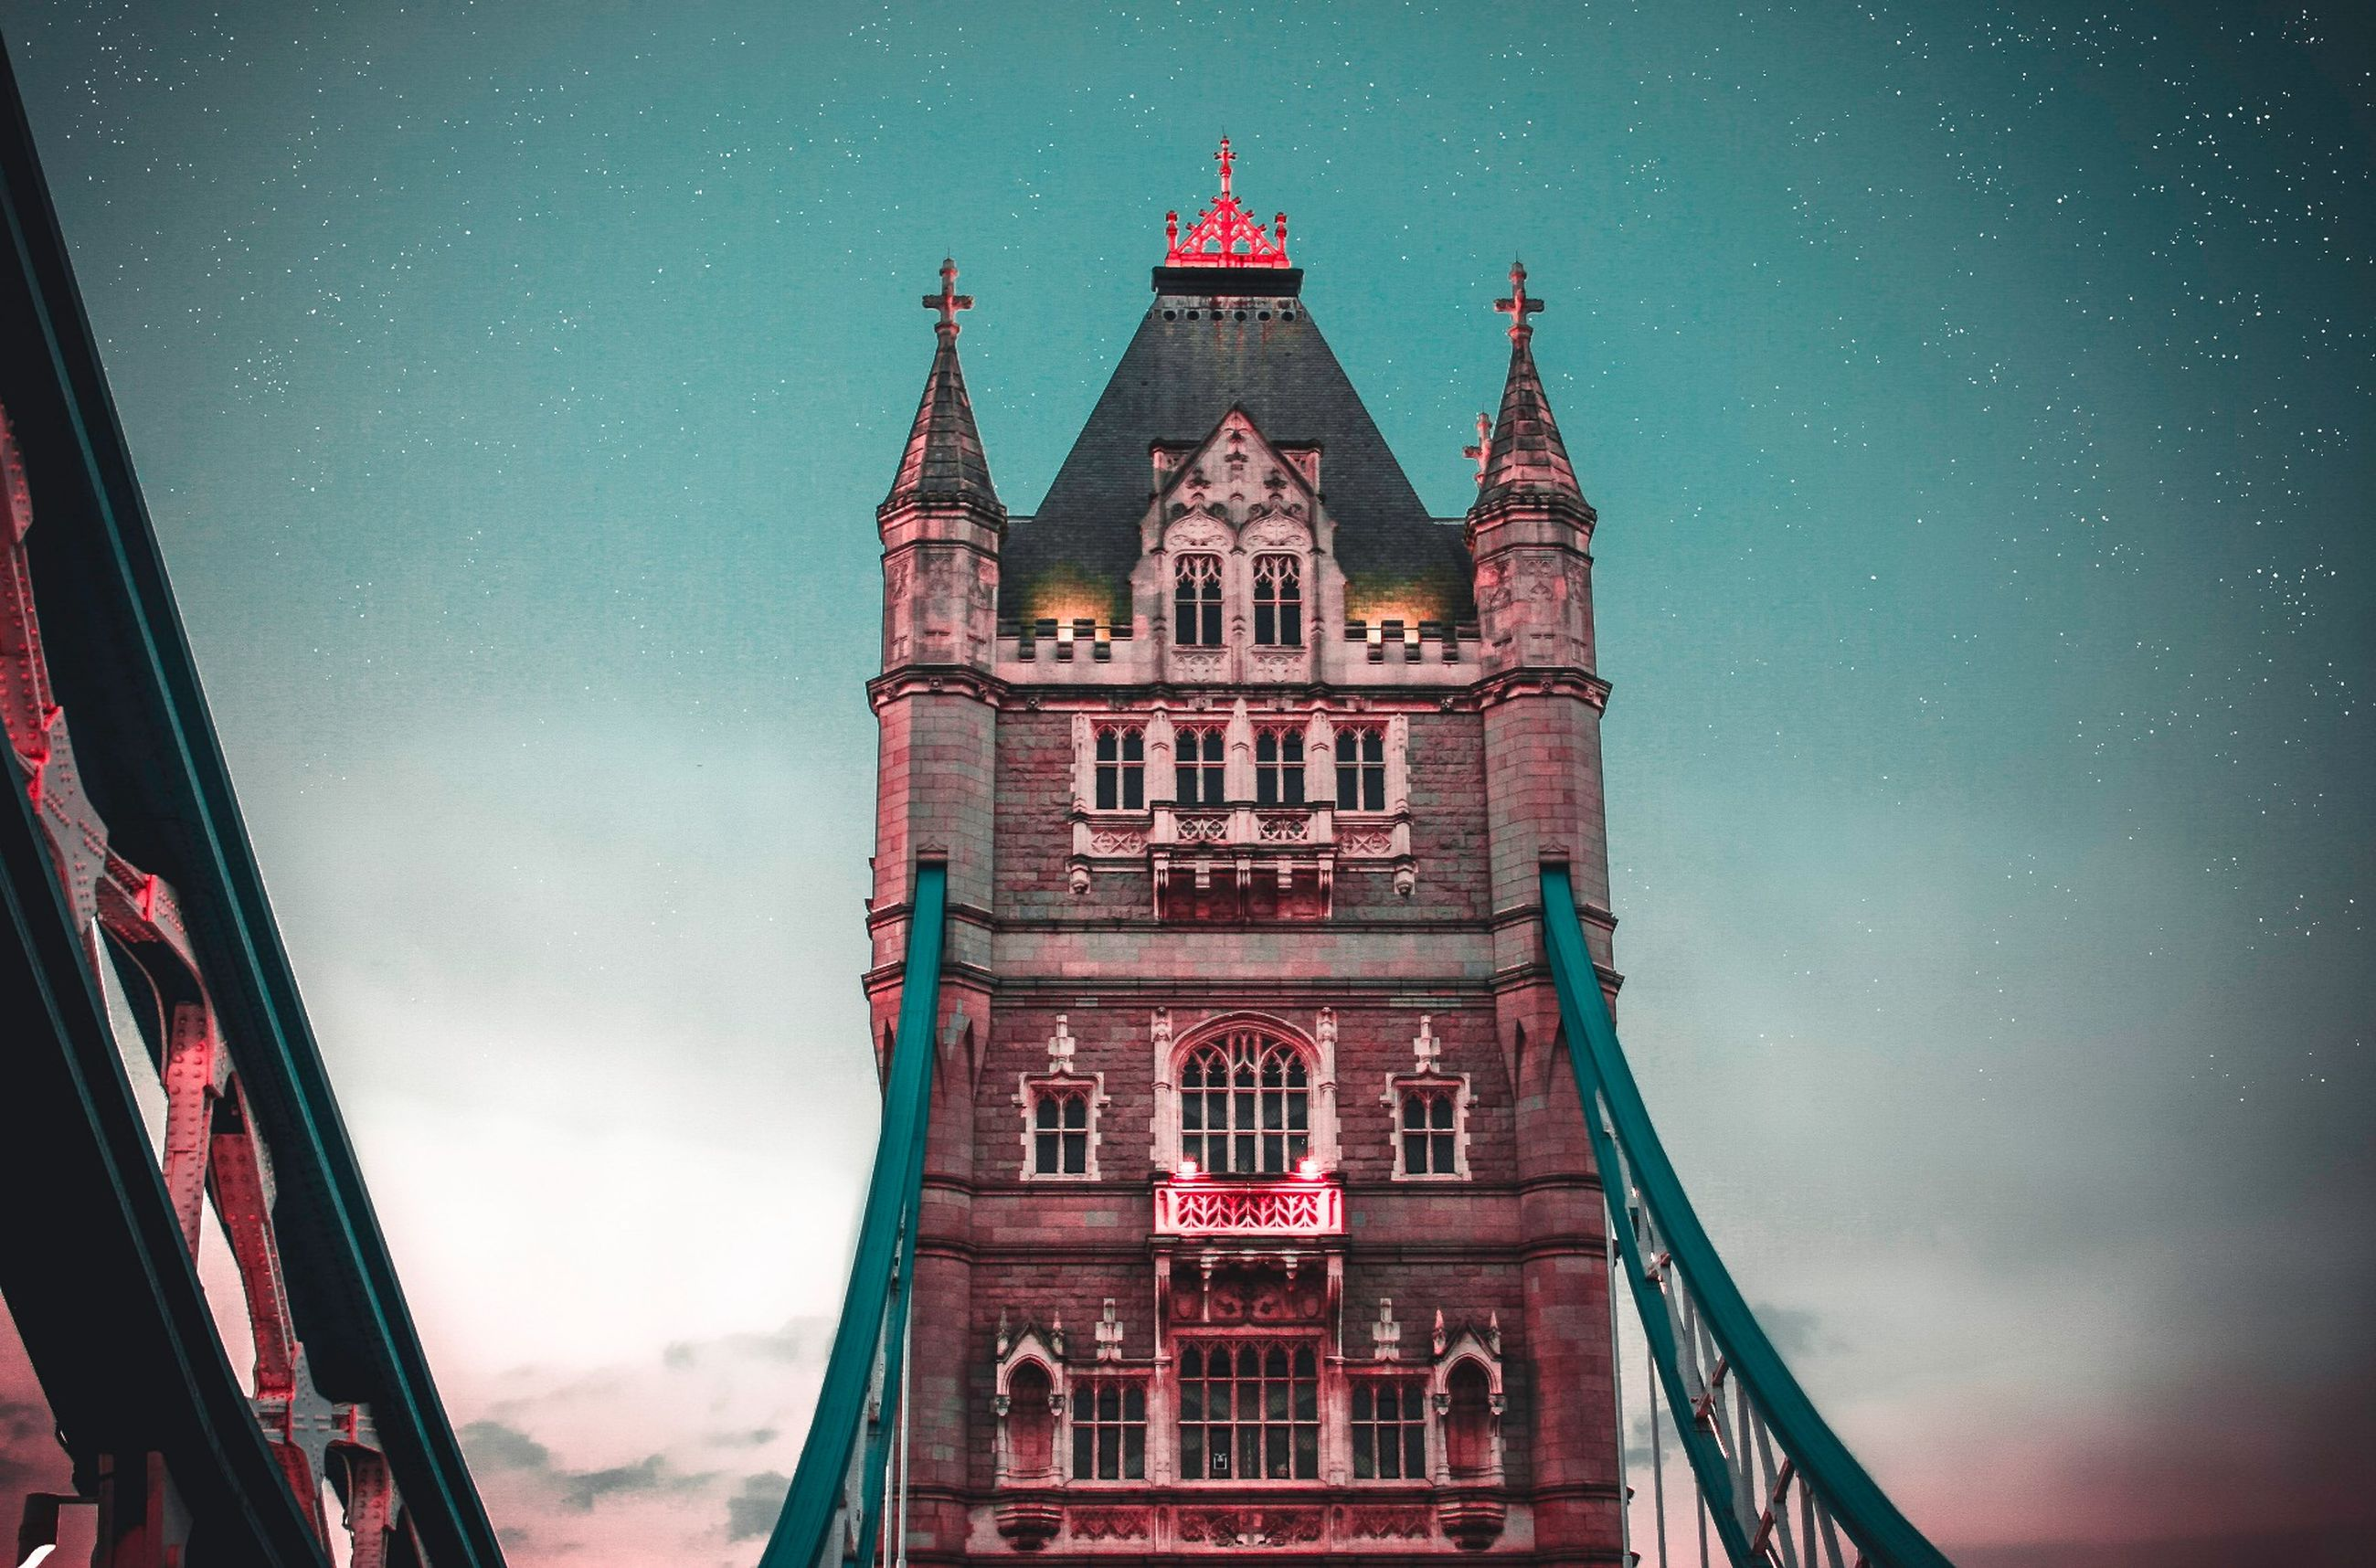 built structure, architecture, building exterior, sky, travel destinations, building, low angle view, tower, nature, travel, no people, city, tourism, religion, the past, belief, history, place of worship, spirituality, outdoors, clock, spire